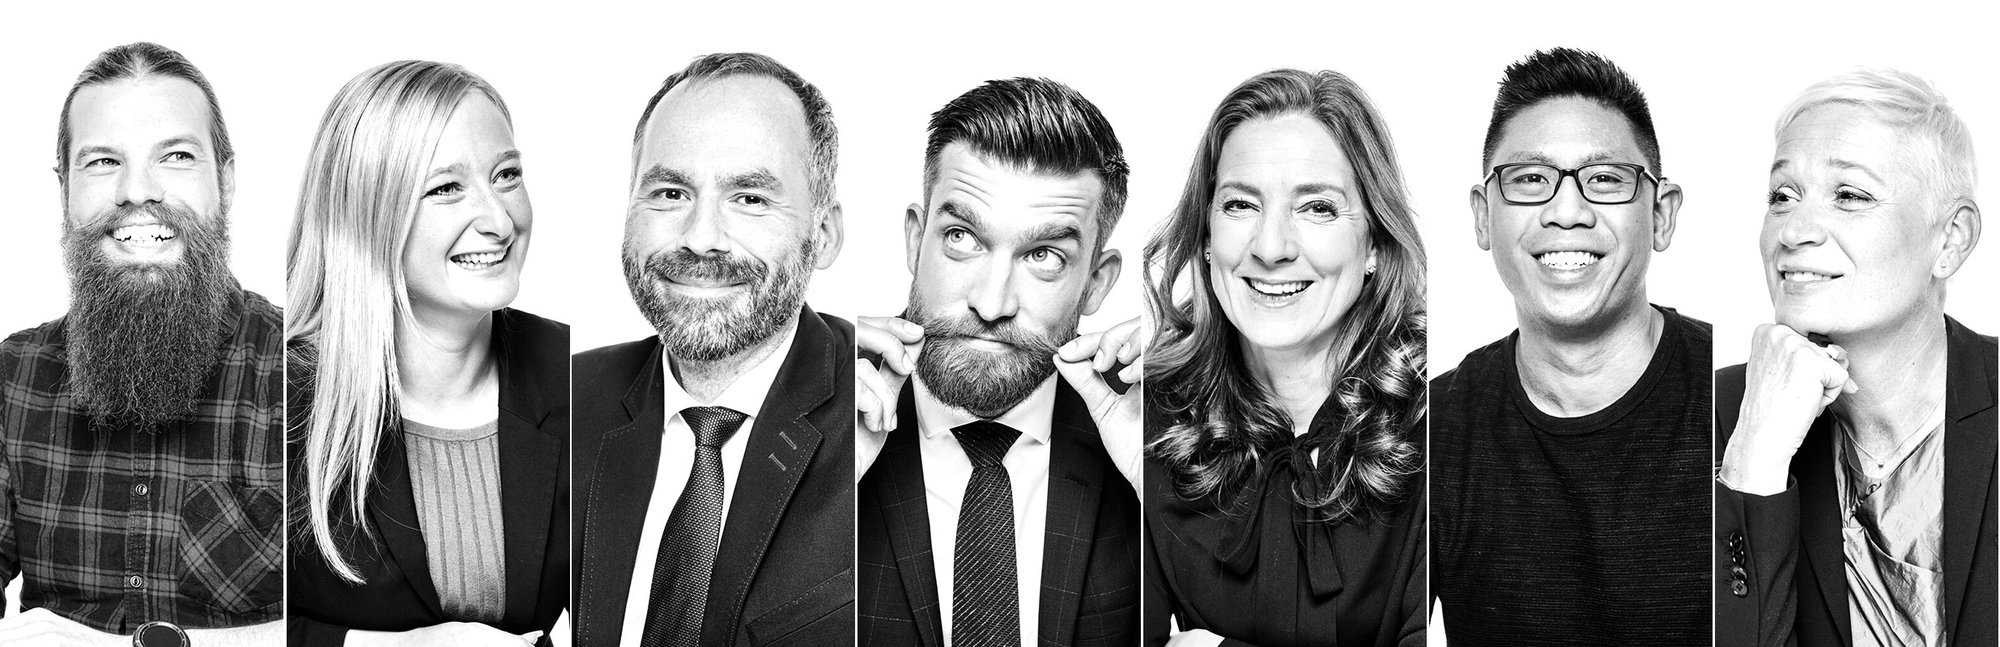 Seven of our employees in black and white portraits and authentic poses